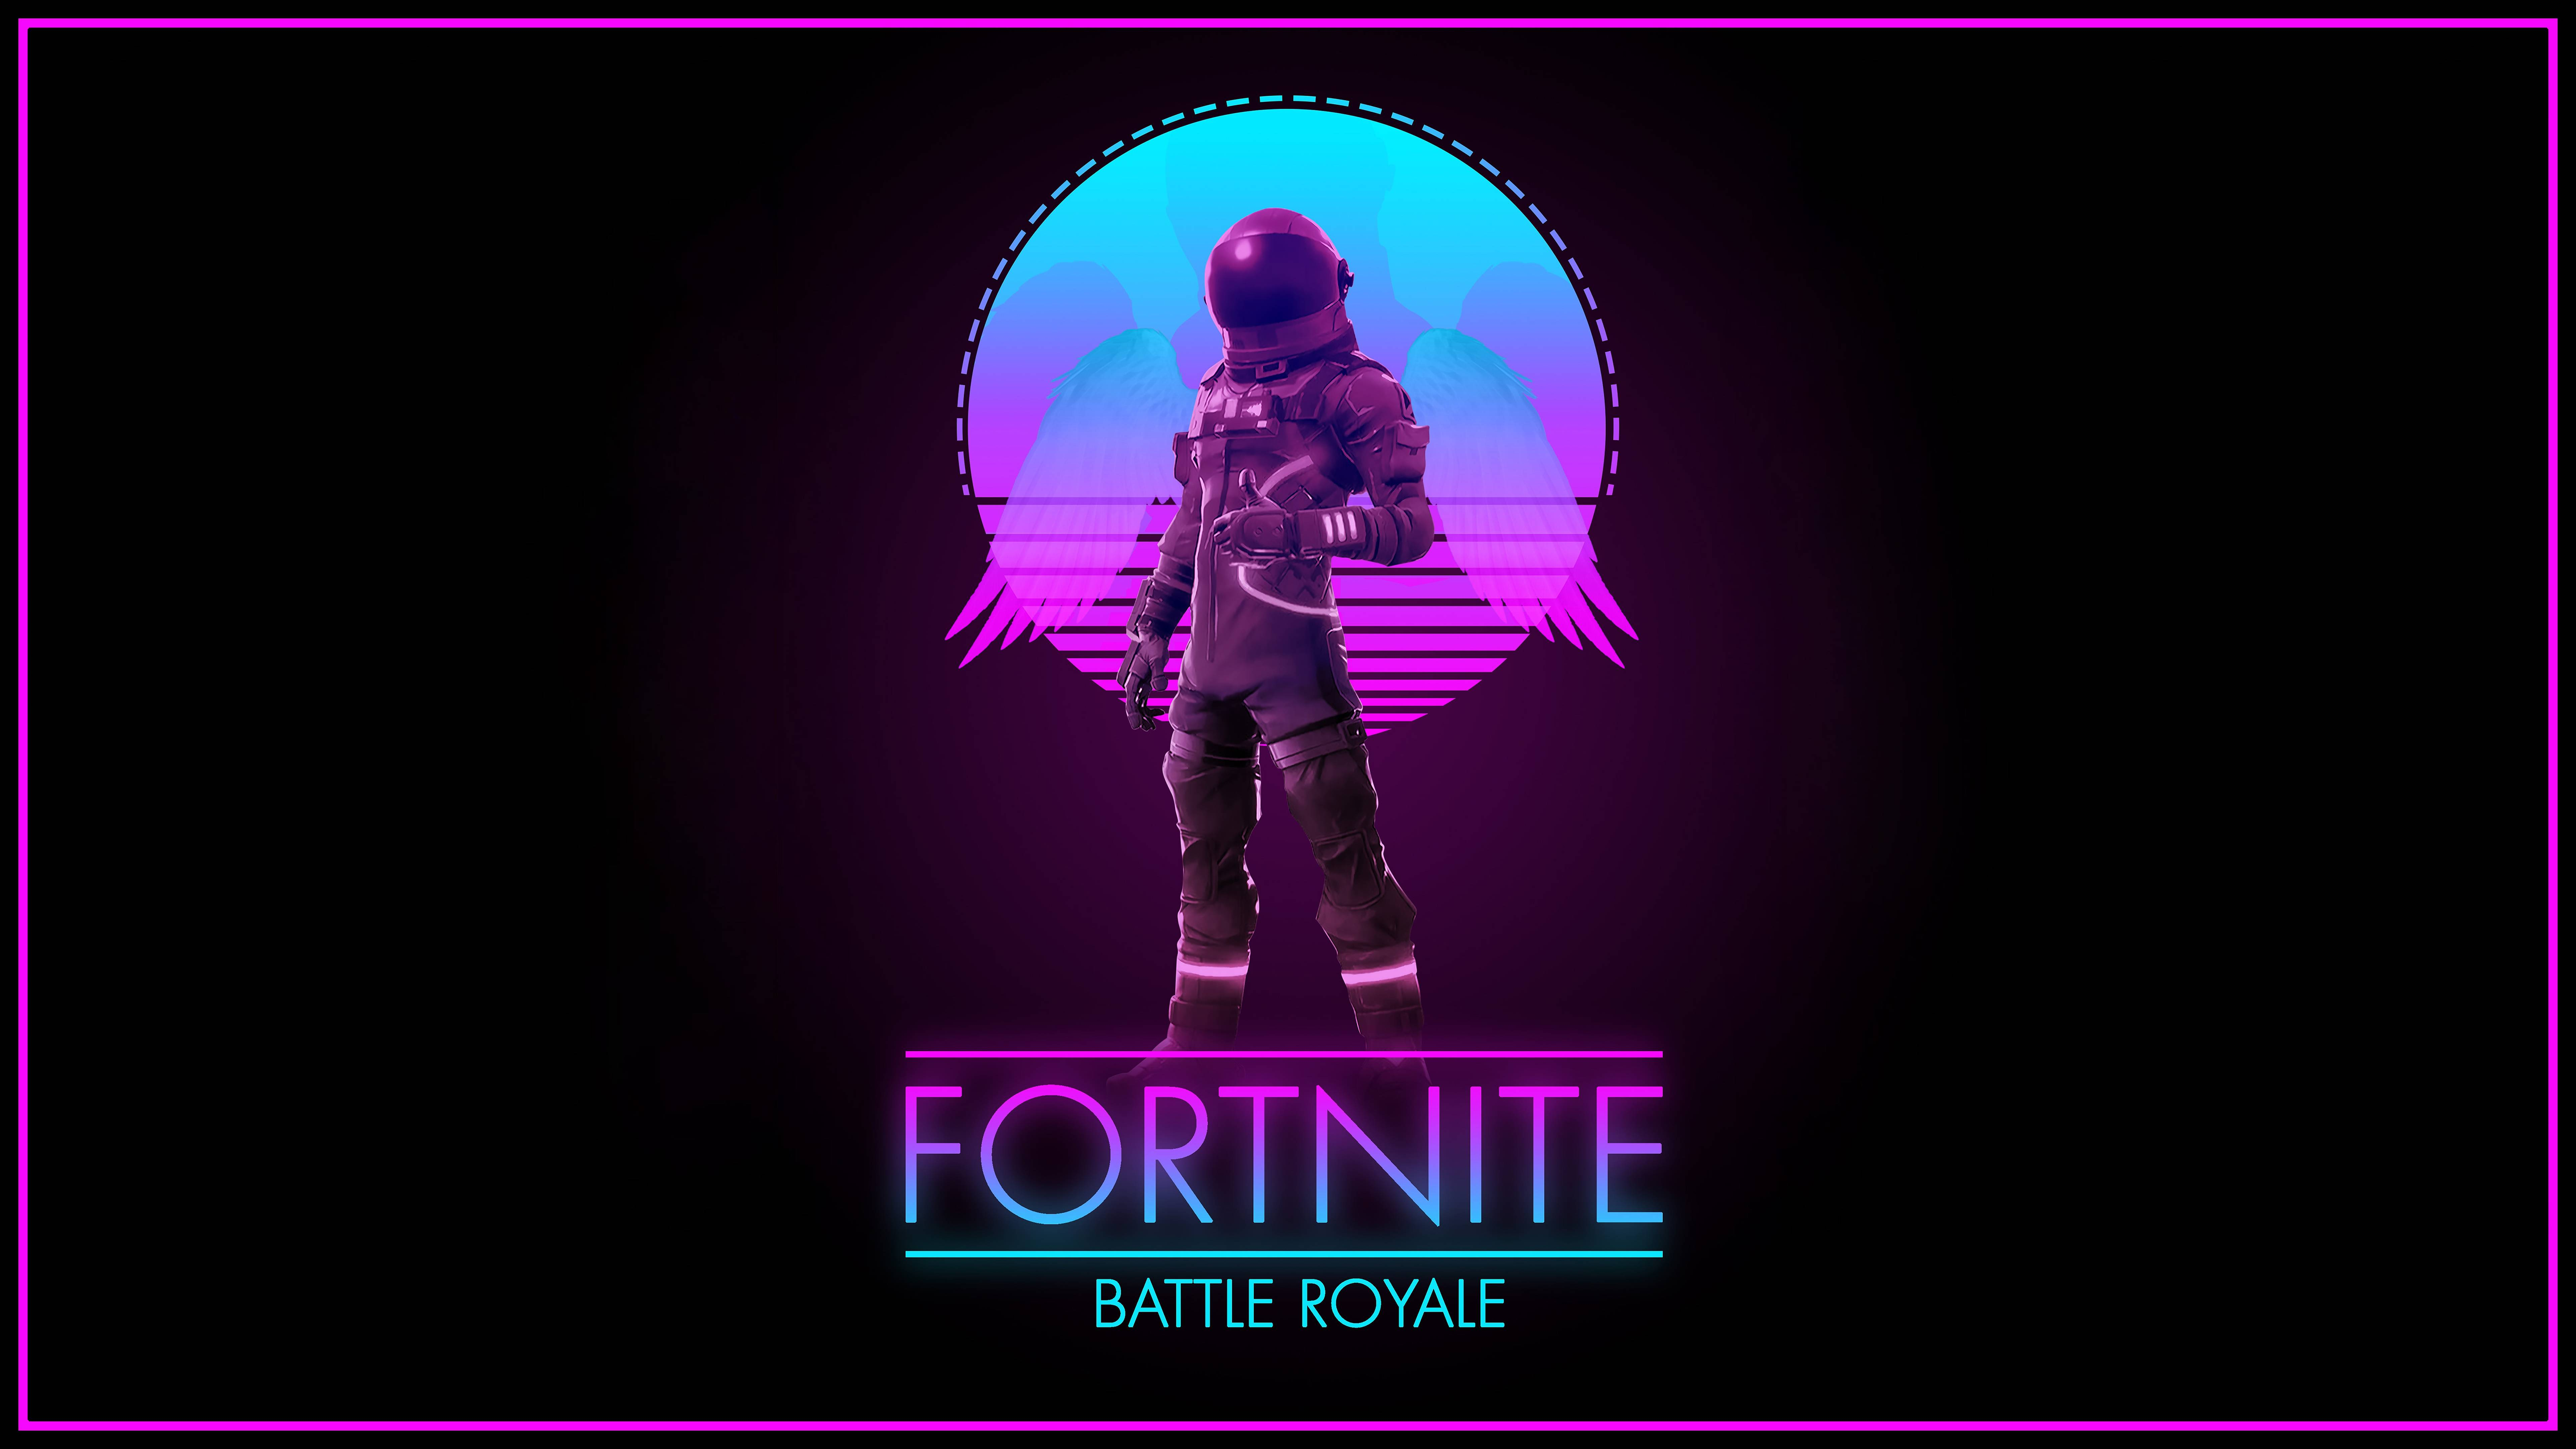 7680x4320 Check out 8 New Fortnite Wallpapers [Full HD and 4K]